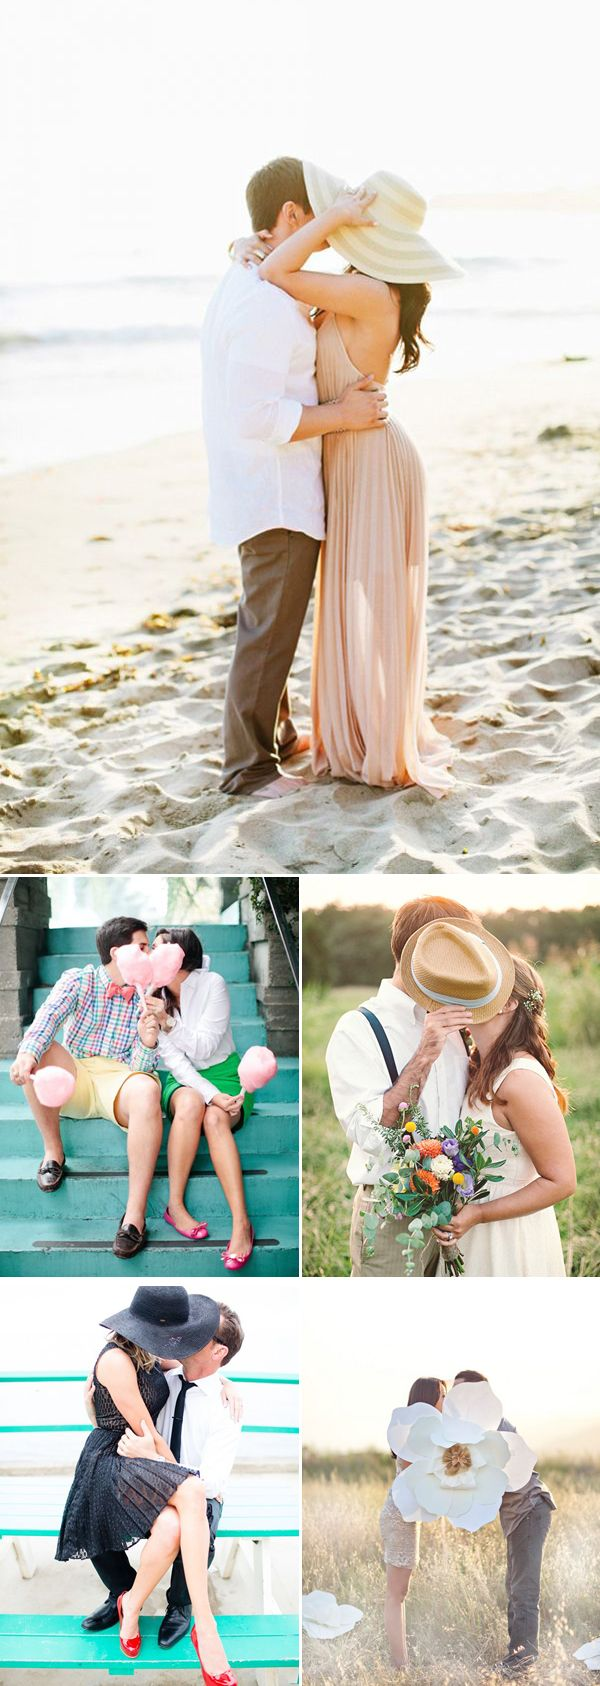 37 Must Try Cute Couple Photo Poses - Hidden Kiss!